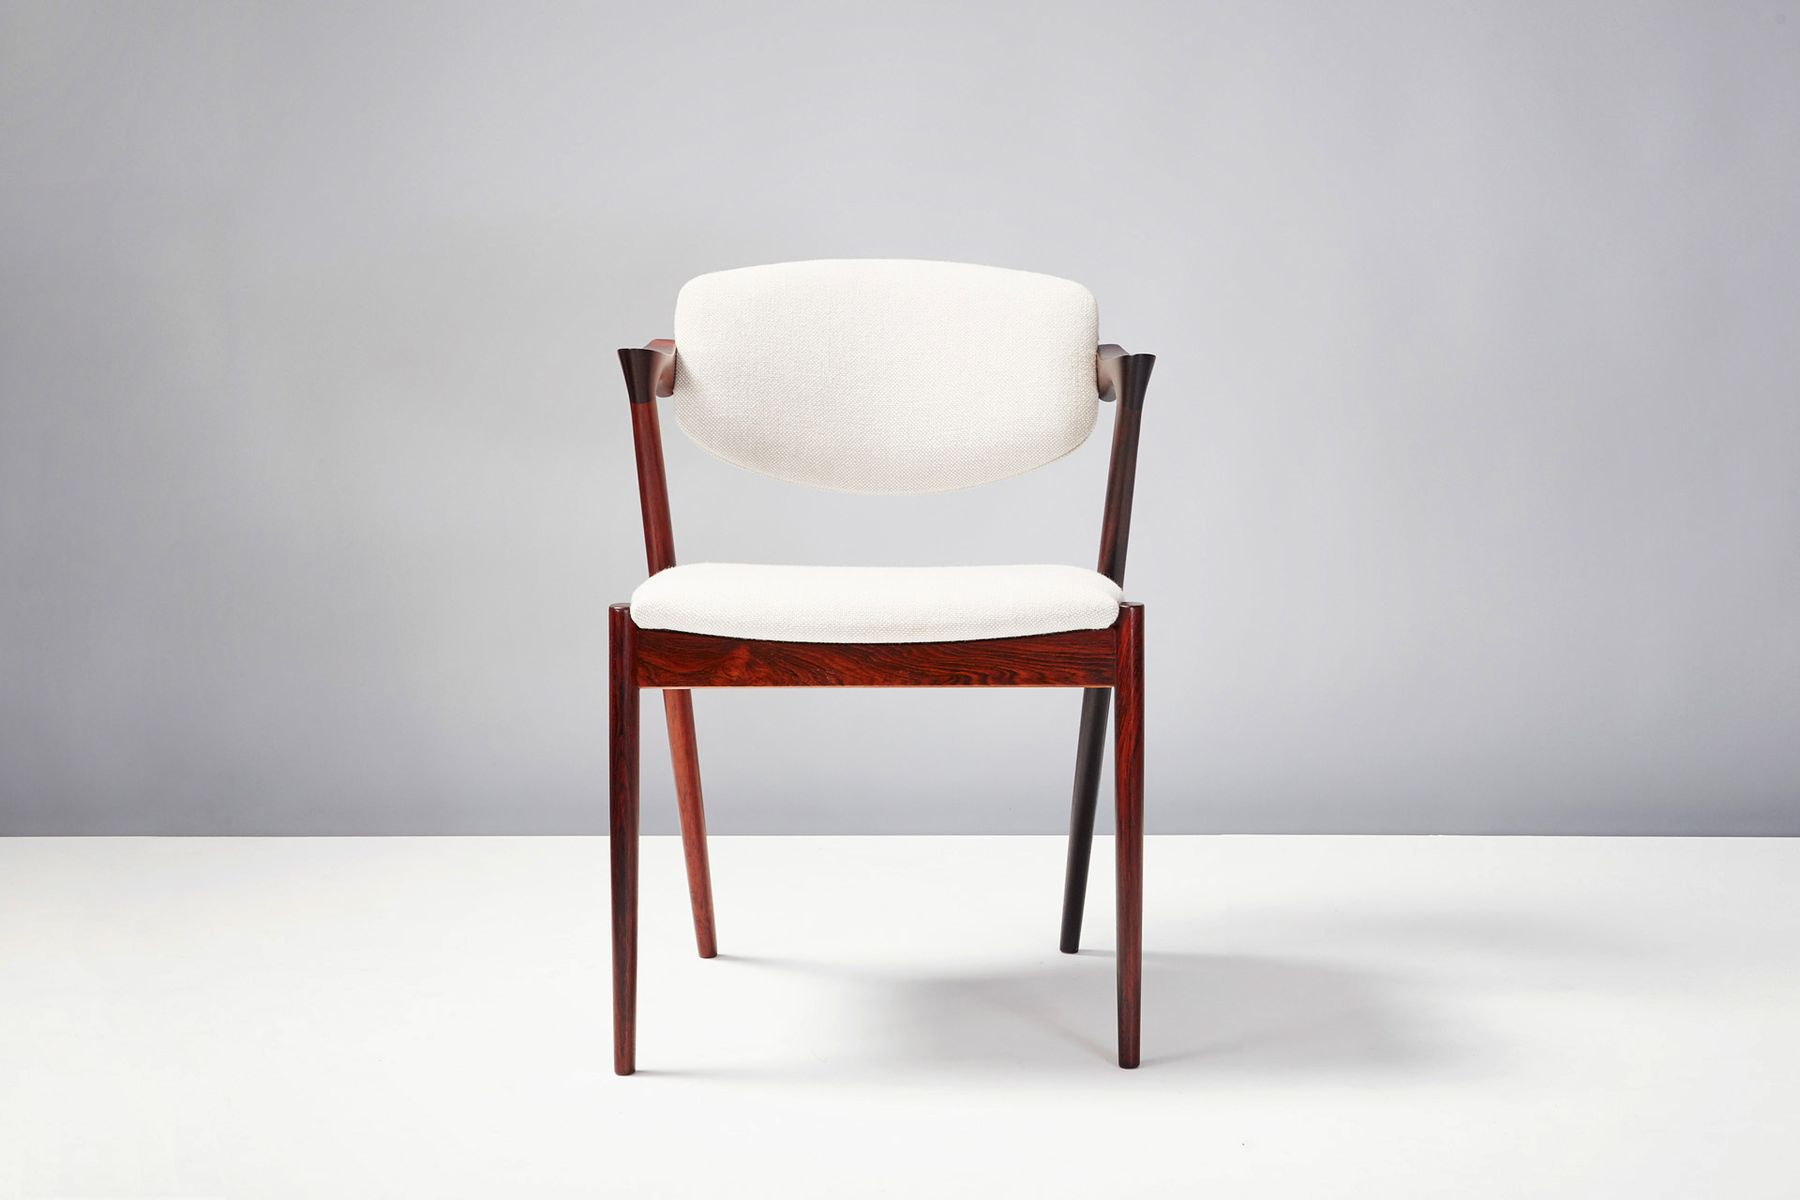 Model 42 dining chairs by kai kristiansen for skovman andersen 1956 set of 6 for sale at pamono - Kai kristiansen chairs ...